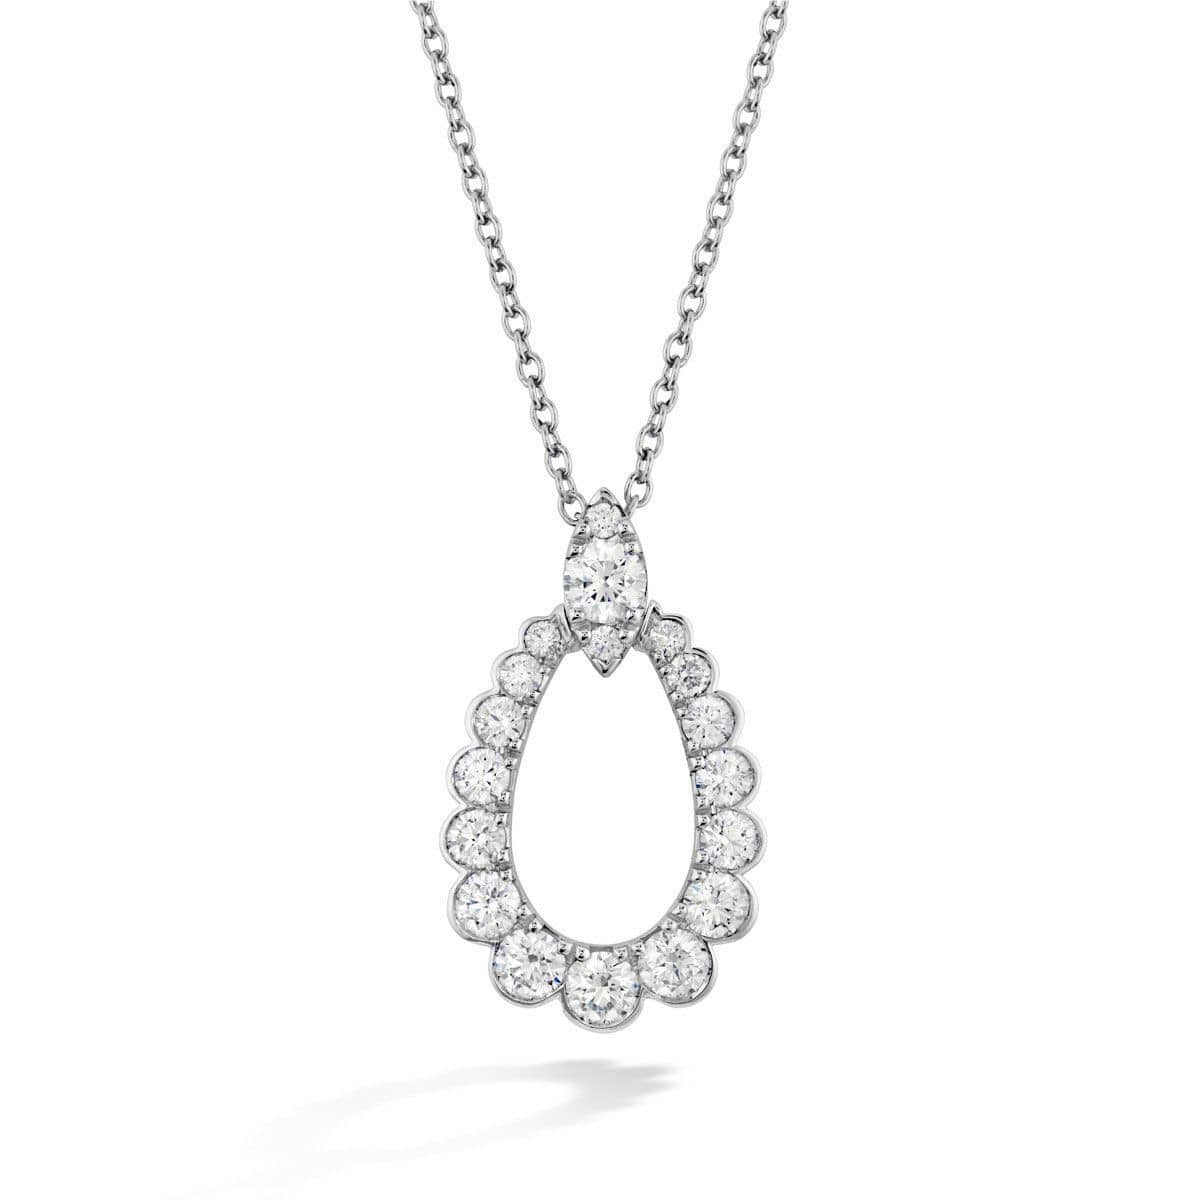 Aerial Regal Teardrop Diamond Pendant & Chain - HFPAREGT00858-Hearts on Fire-Renee Taylor Gallery